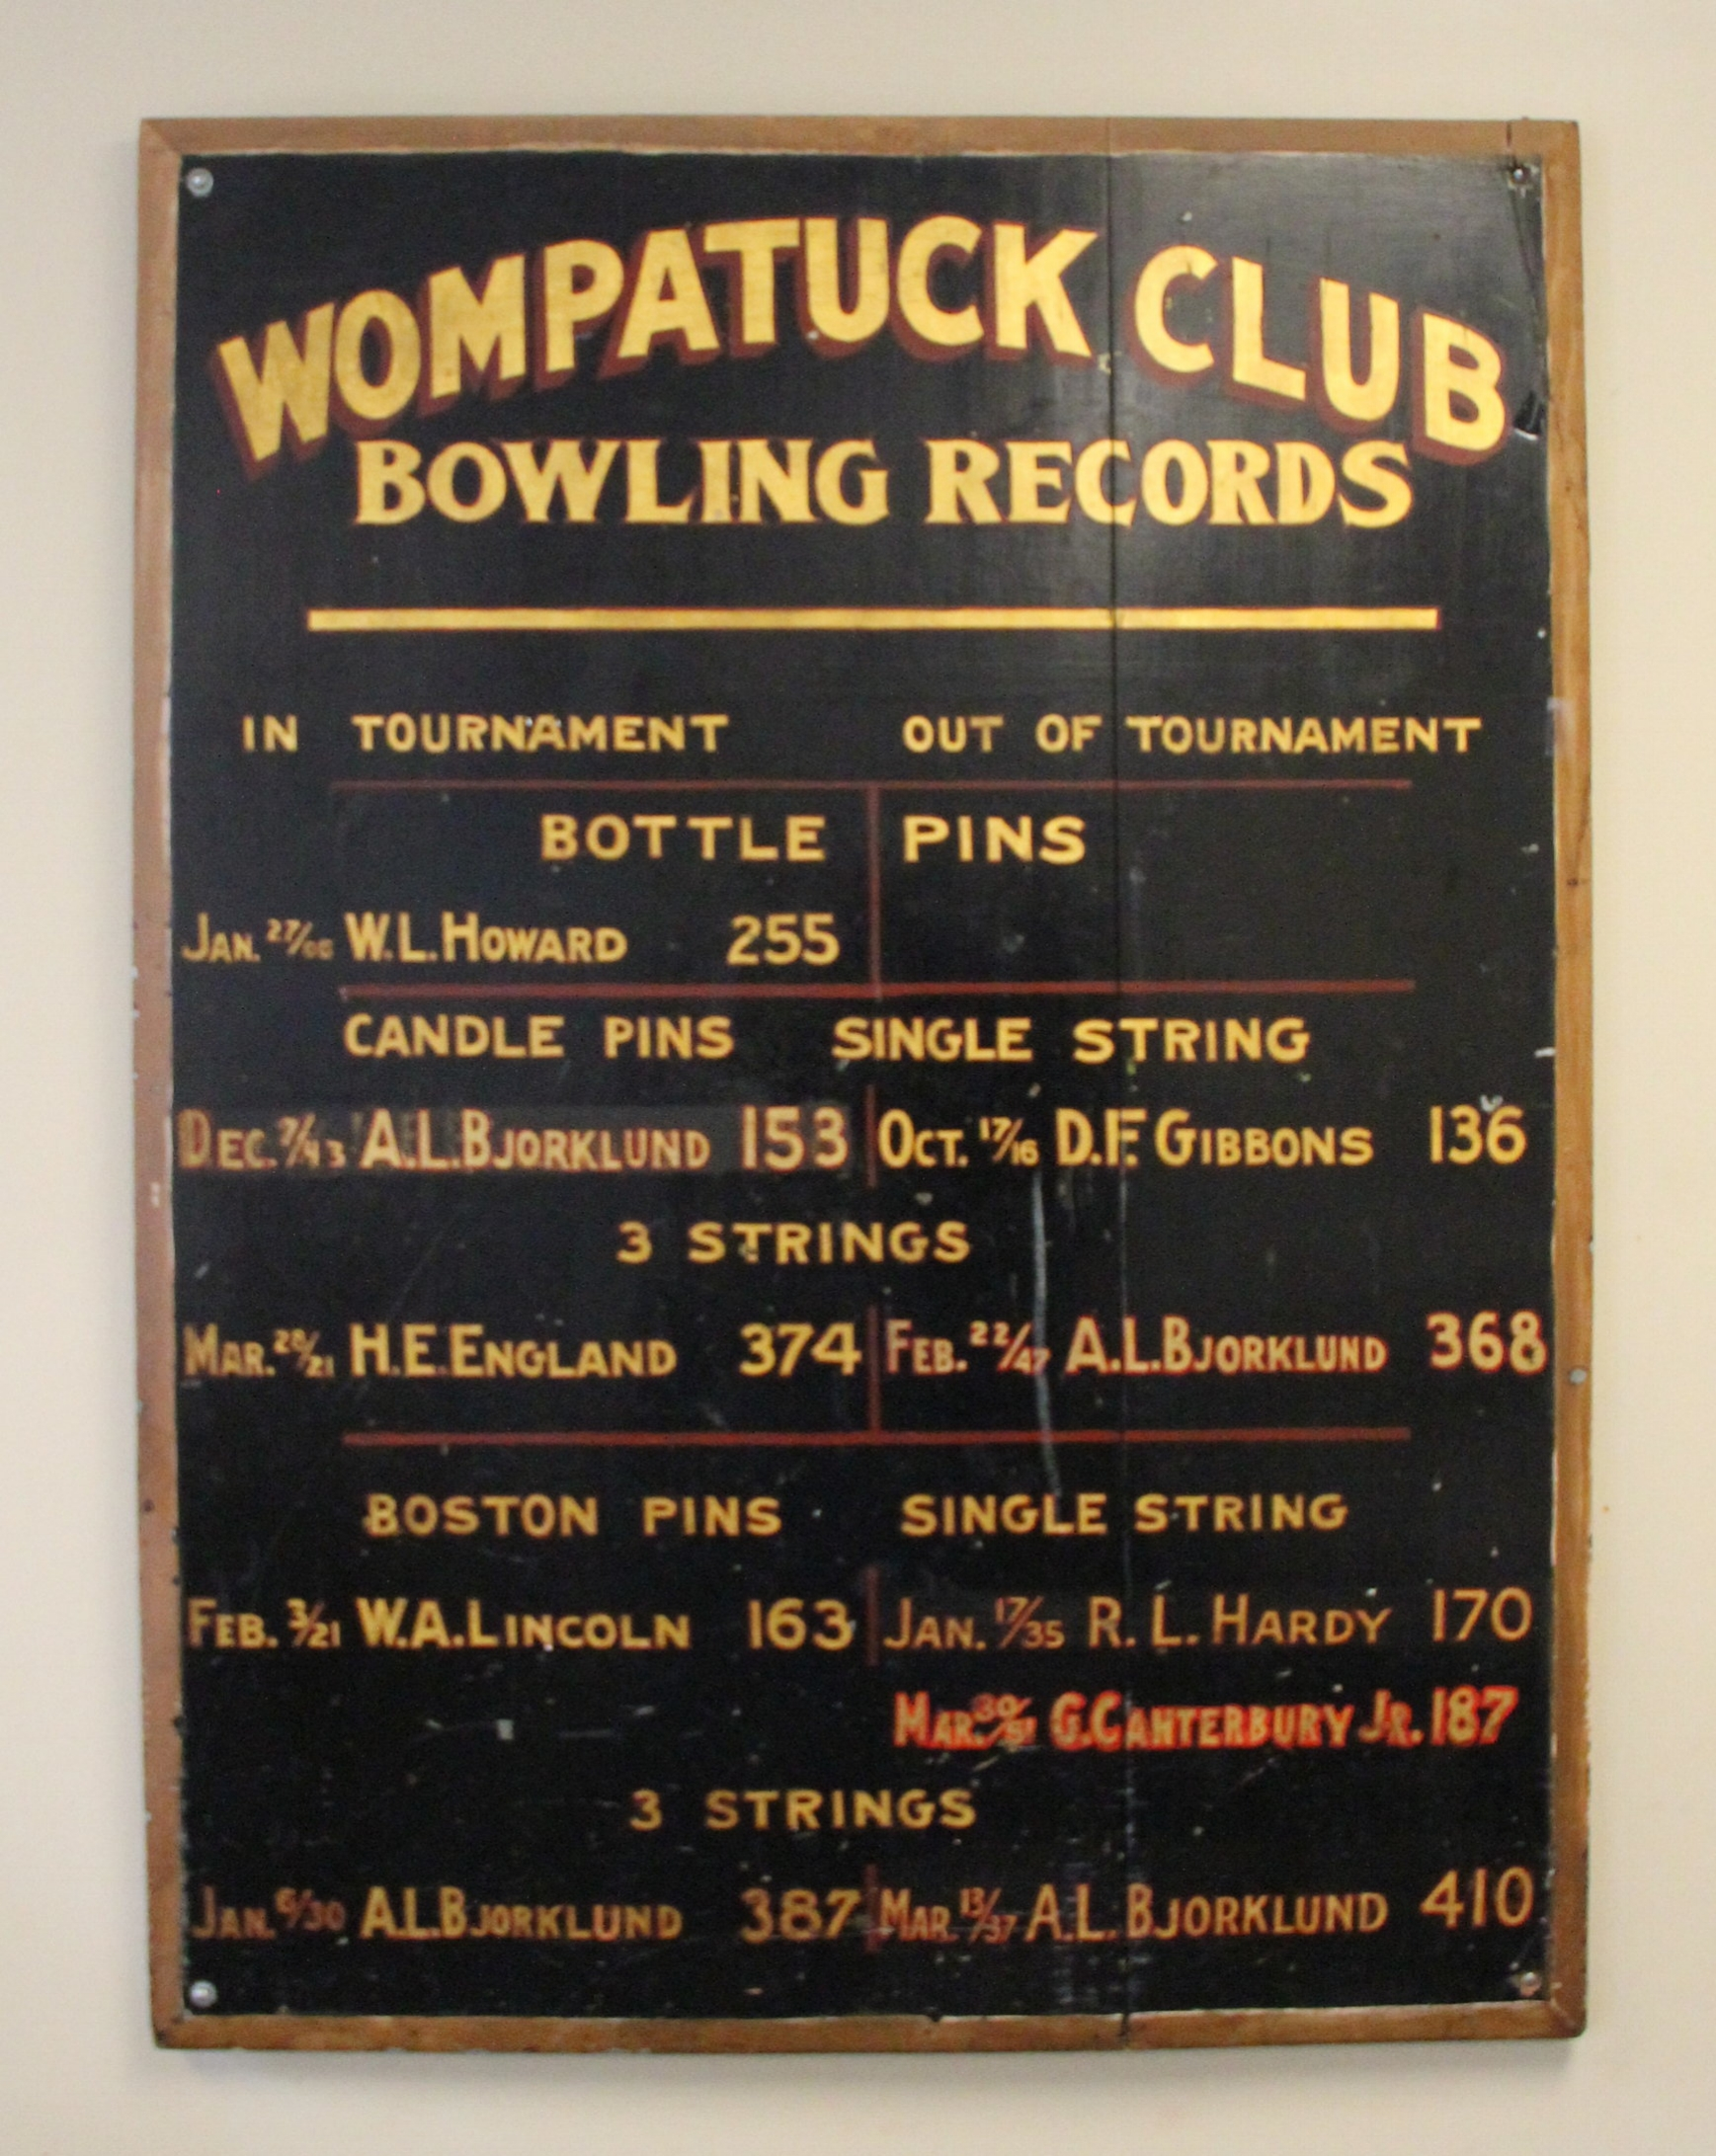 The Wompatuck Club bowling records are presently displayed in the board room.